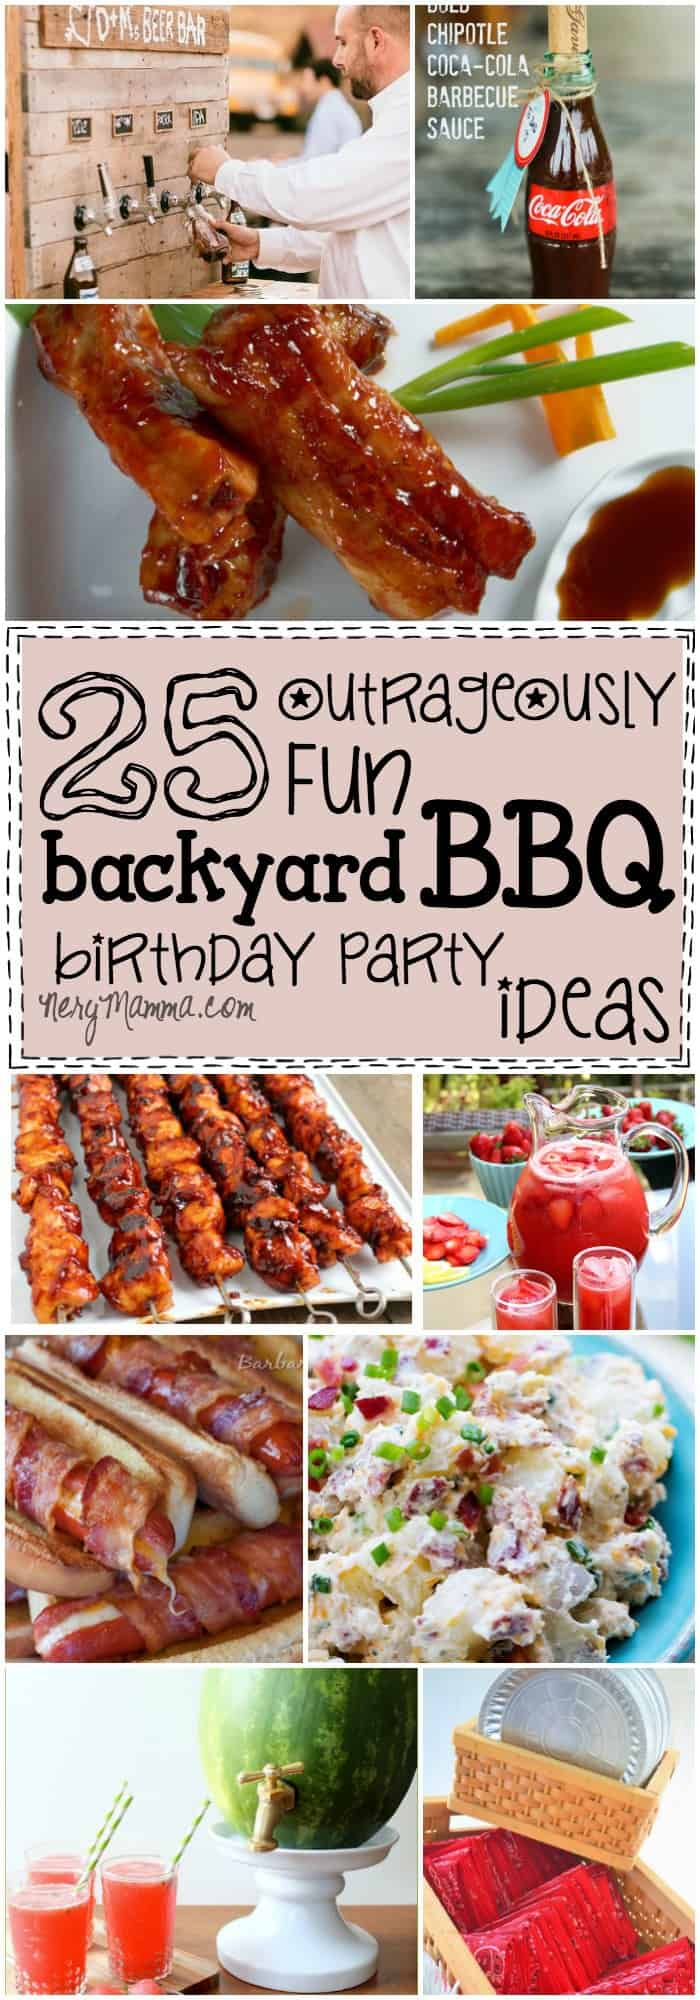 25 outrageously fun backyard bbq birthday party ideas nerdy mamma